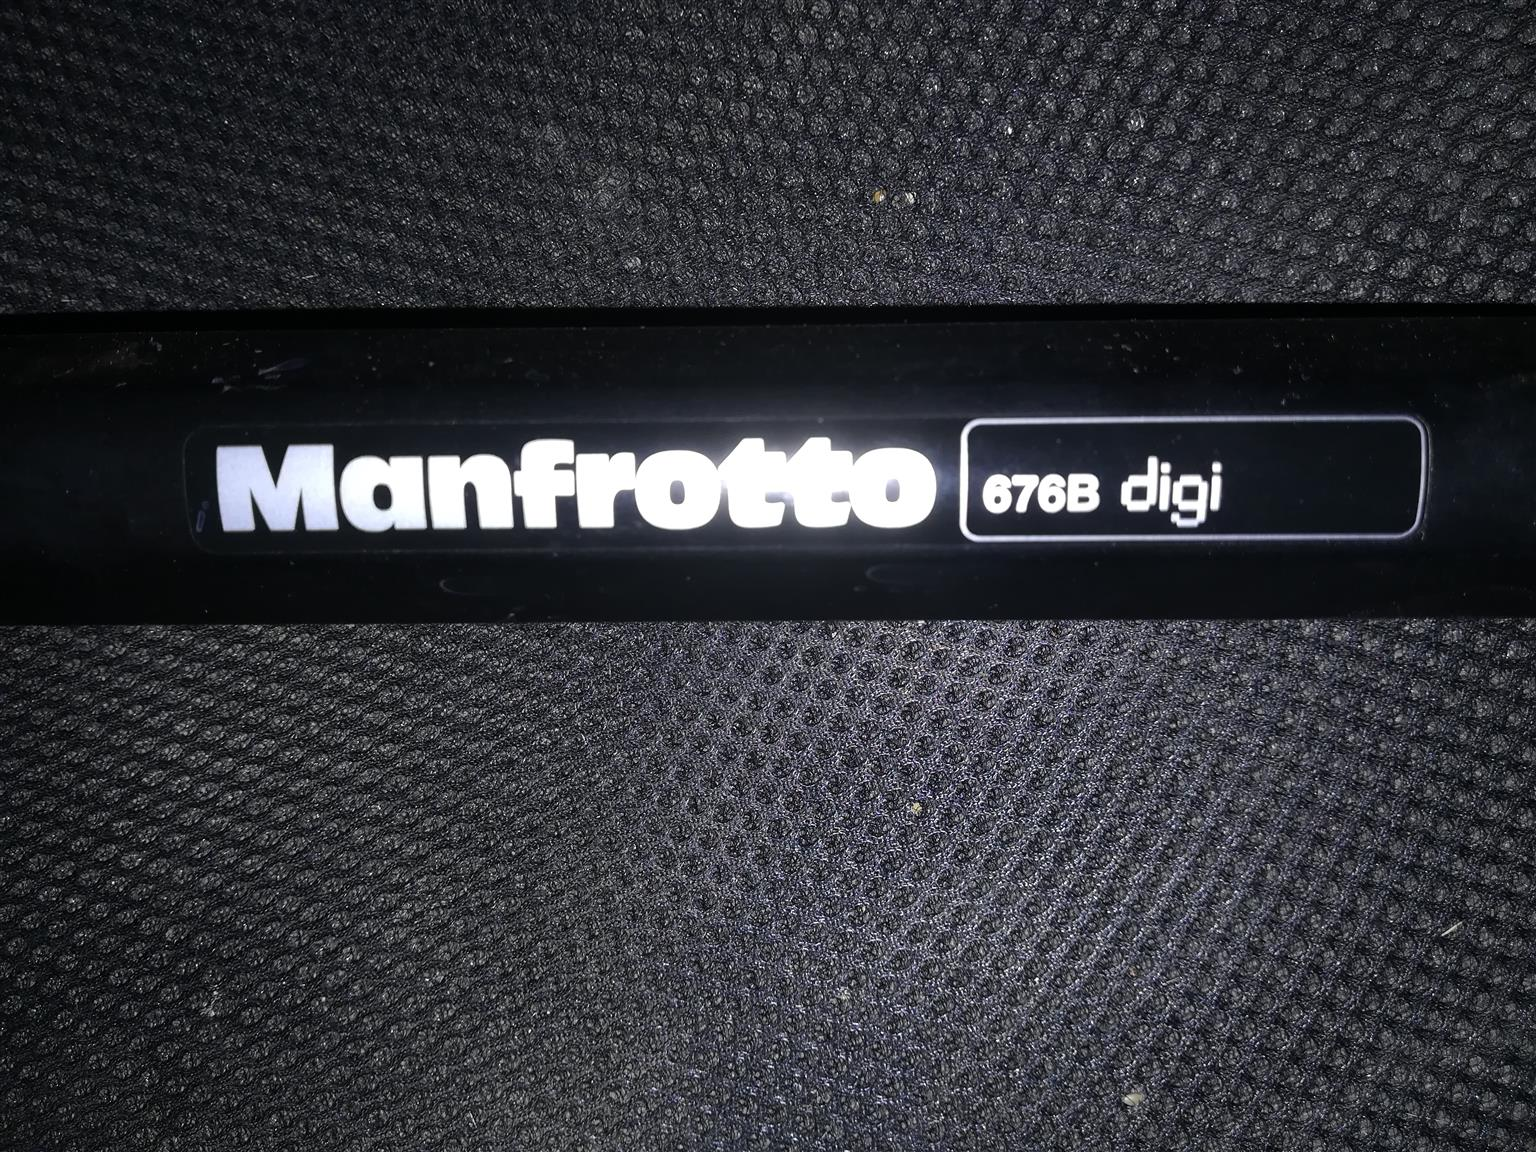 Manfrotto 676B Digi Monopod - Black